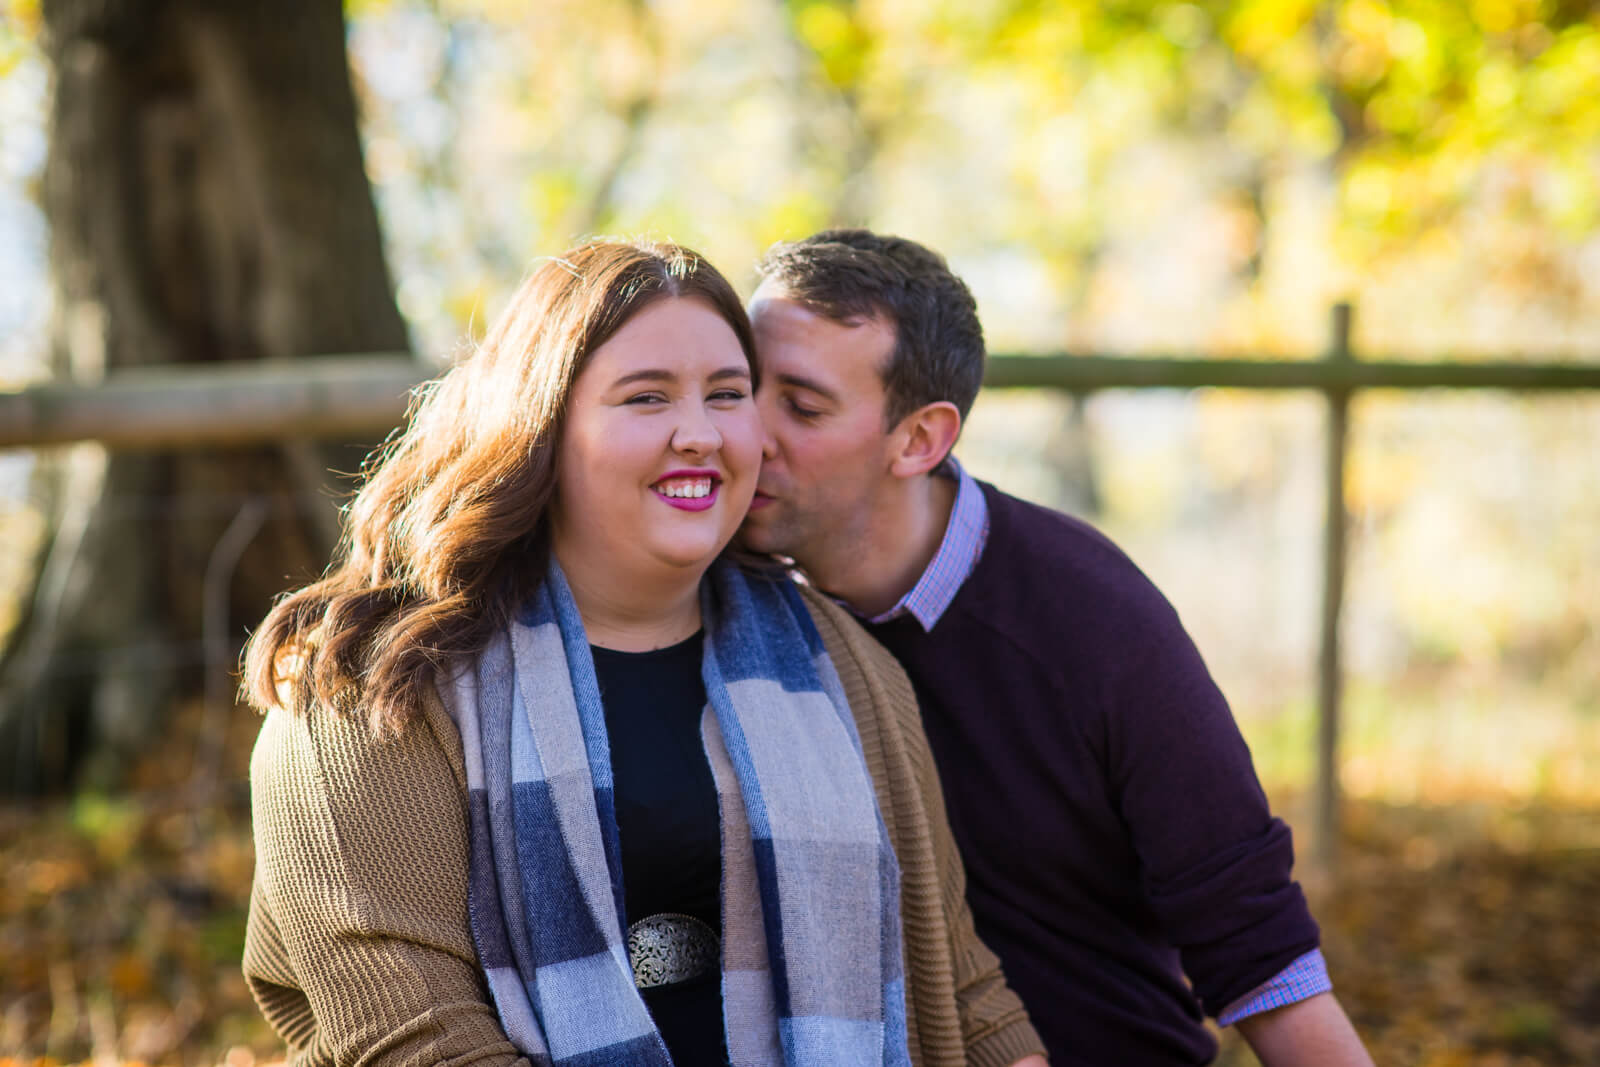 Young man kisssing his fiance on the cheek in autumn sunshine